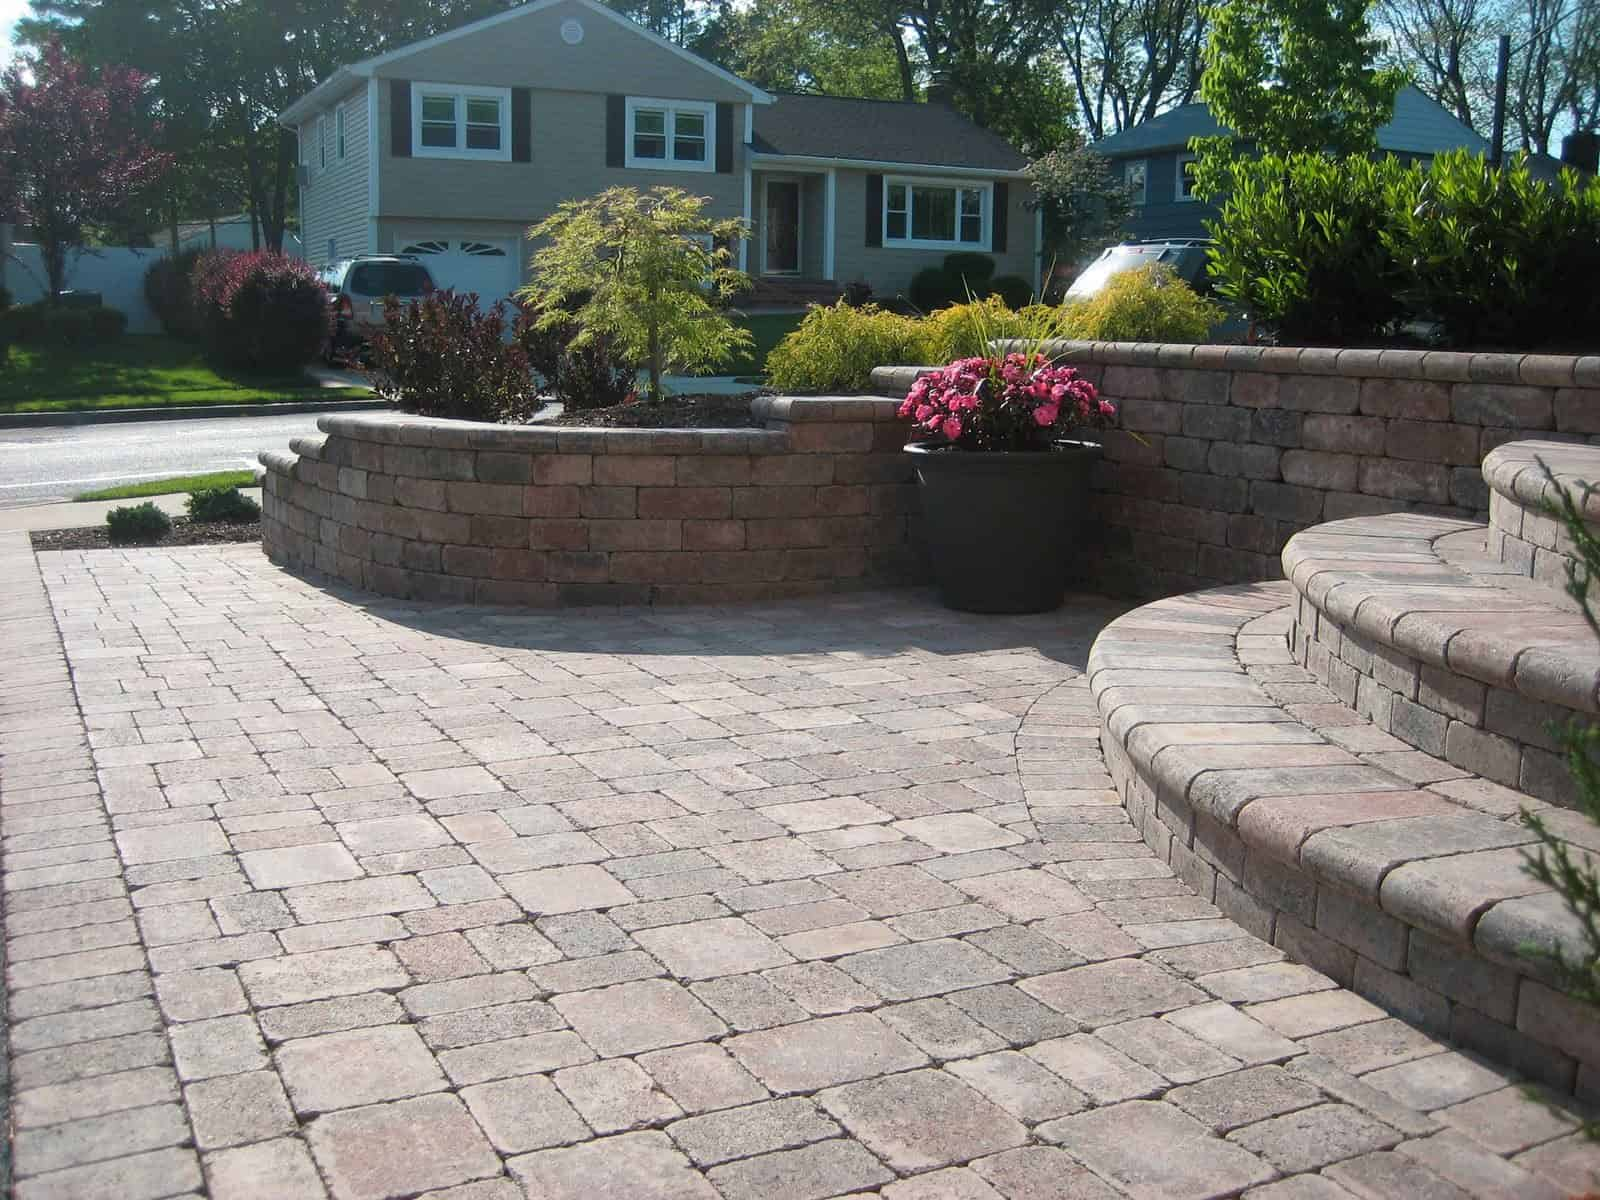 Retaining Wall - Unilock Dimesional Tumbled Wall System - Color - Terra Cota - with full nose cap - Plainview, Long Island NY